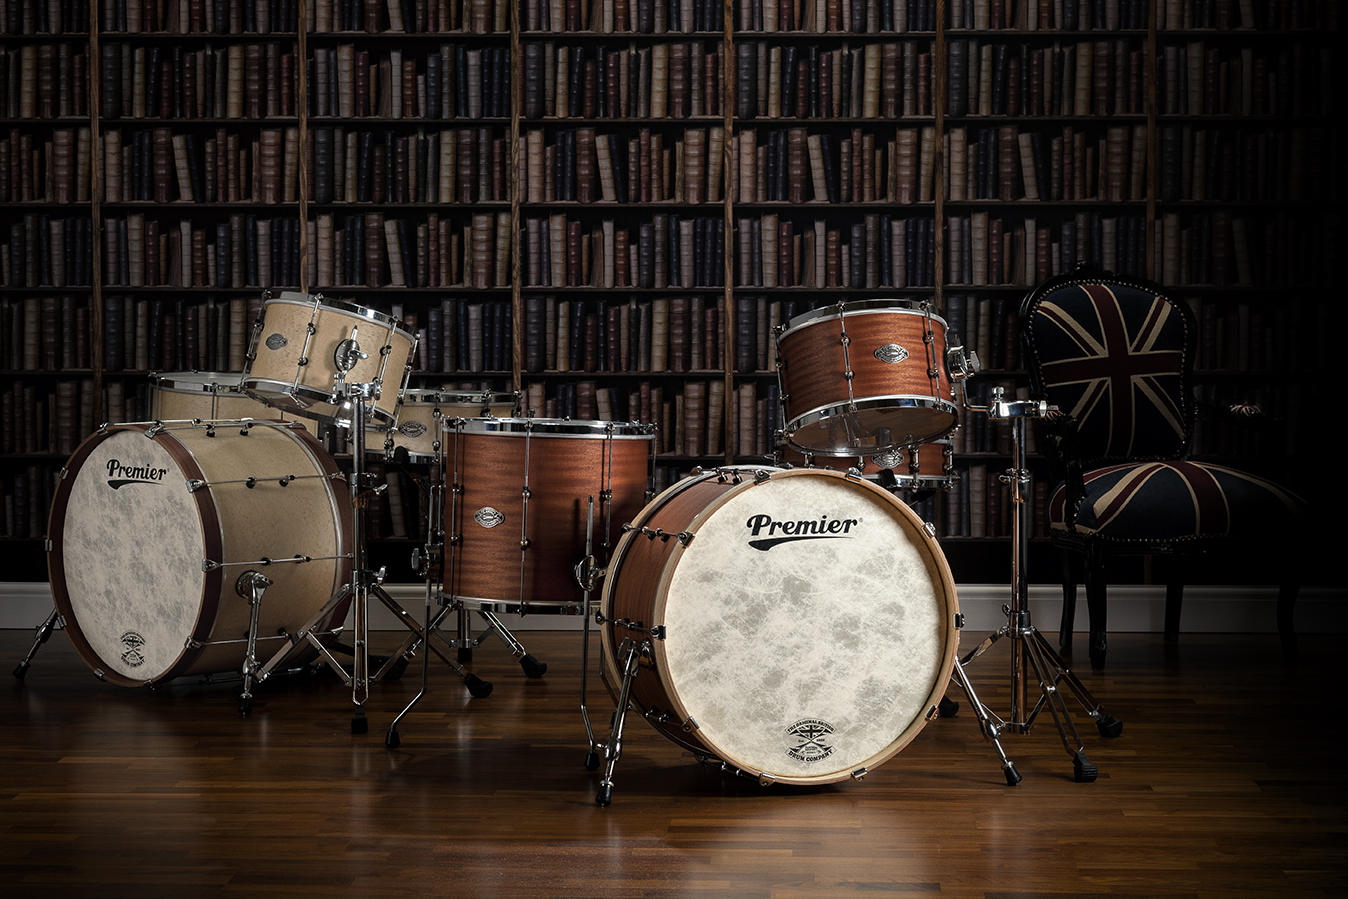 Premier British-Made Modern Classic Drumset